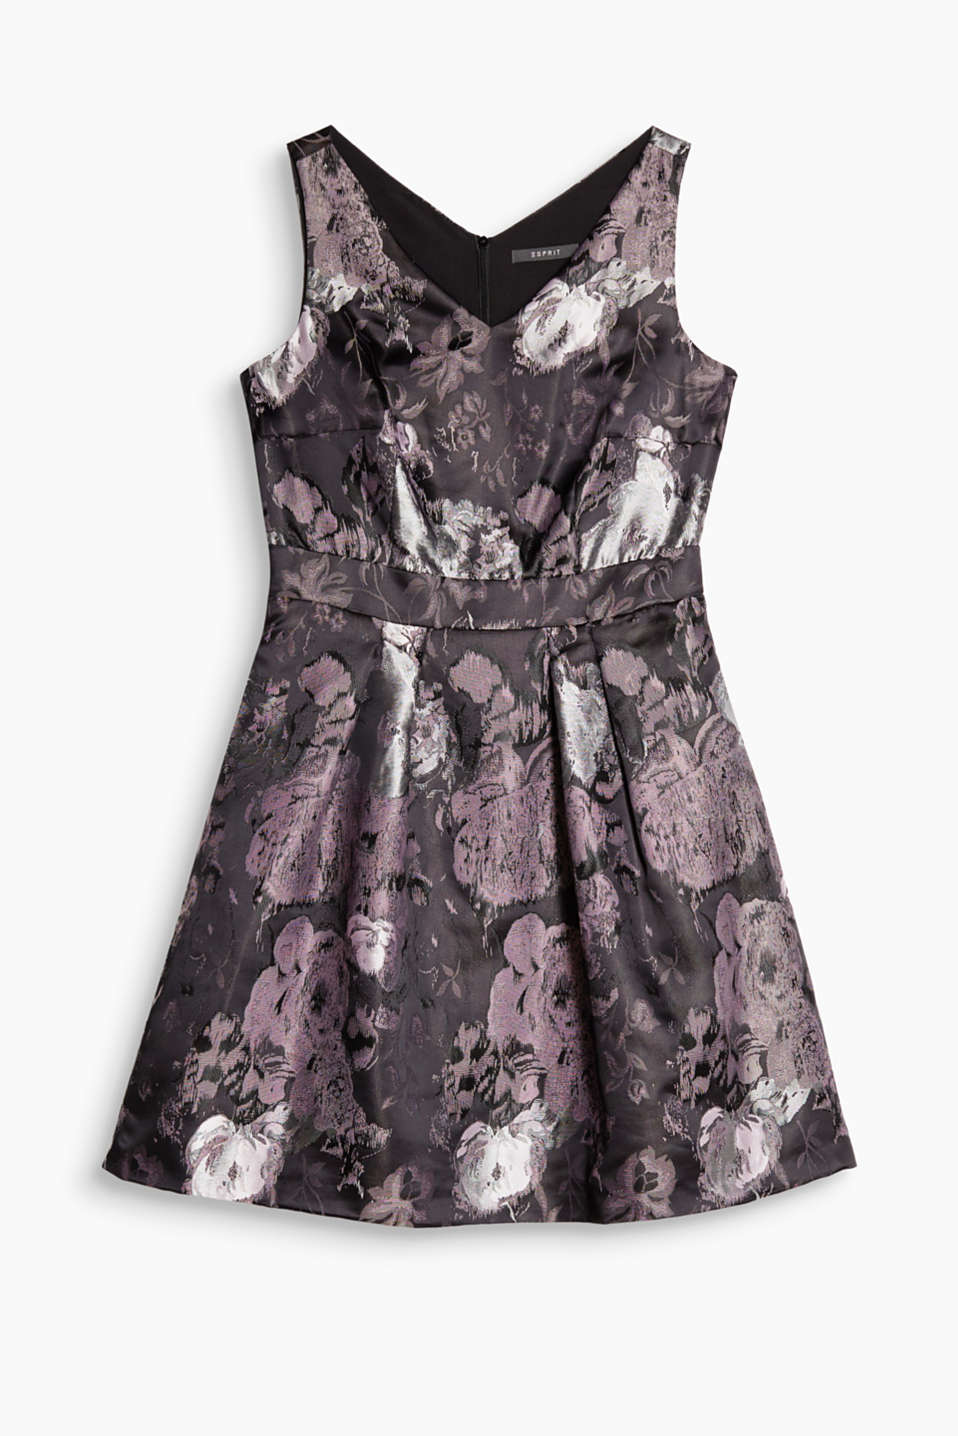 Satin dress with a floral jacquard pattern, double V-neck and flared skirt